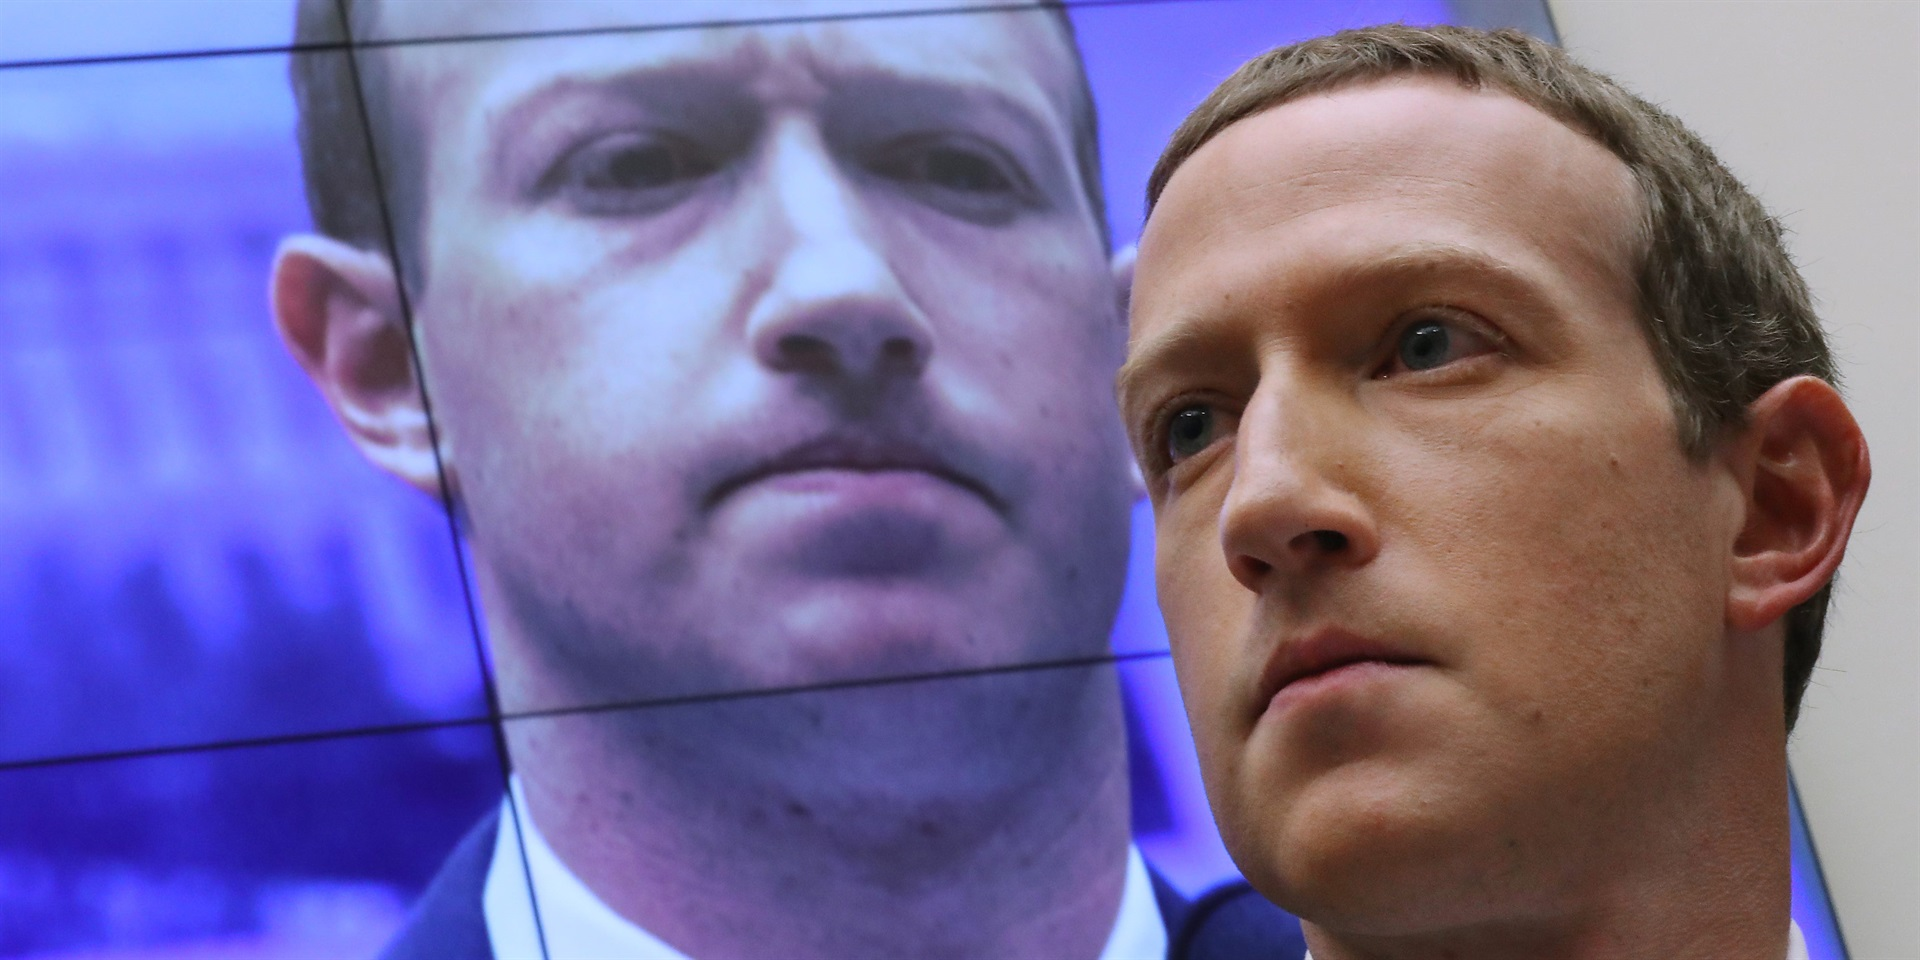 Facebook suing Ukrainian hacker it alleges scraped and sold user information from 178 million accounts - Business Insider South Africa